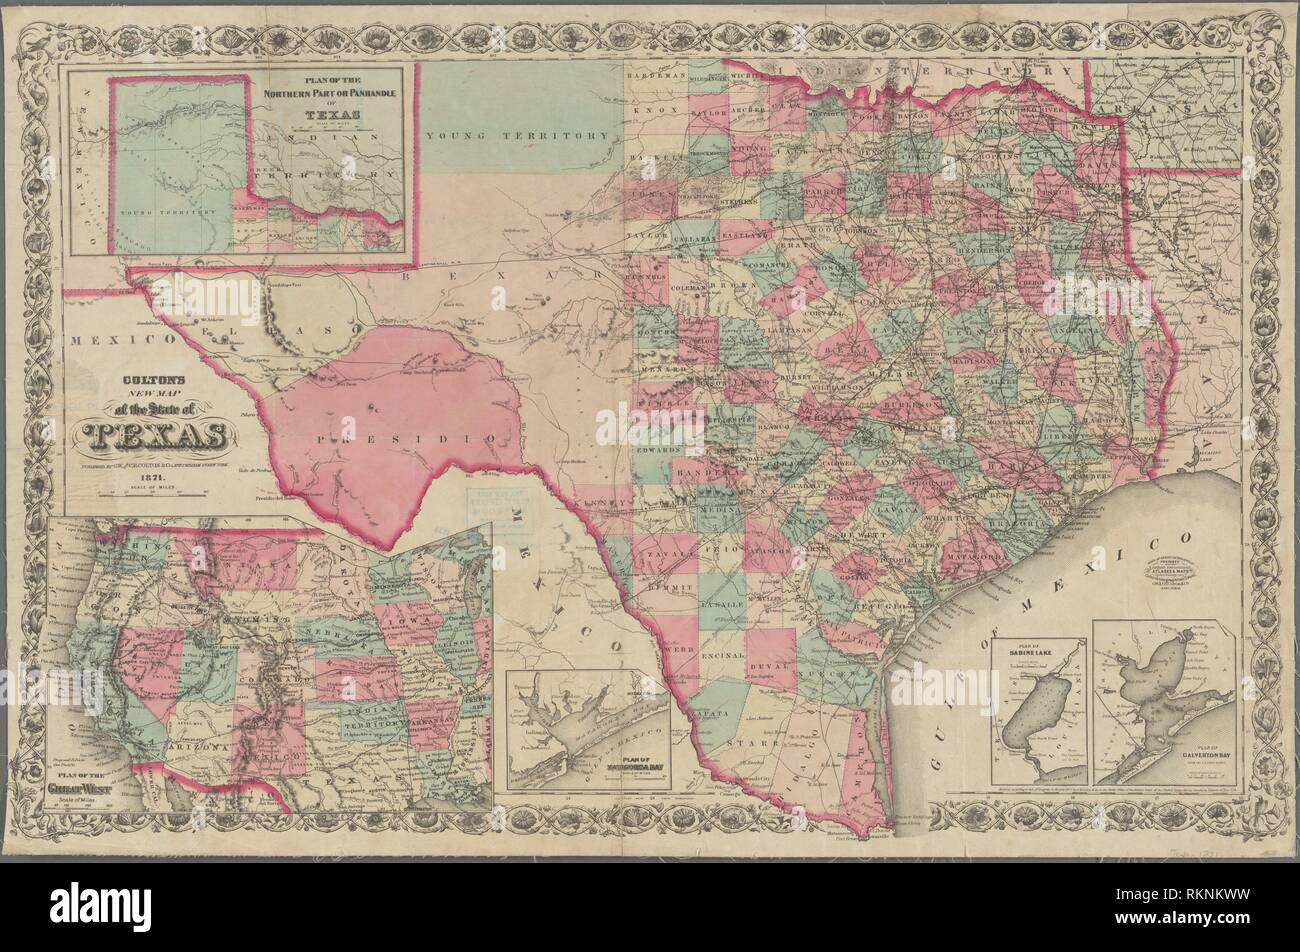 New Map Of Texas.Colton S New Map Of The State Of Texas Additional Title Colton S